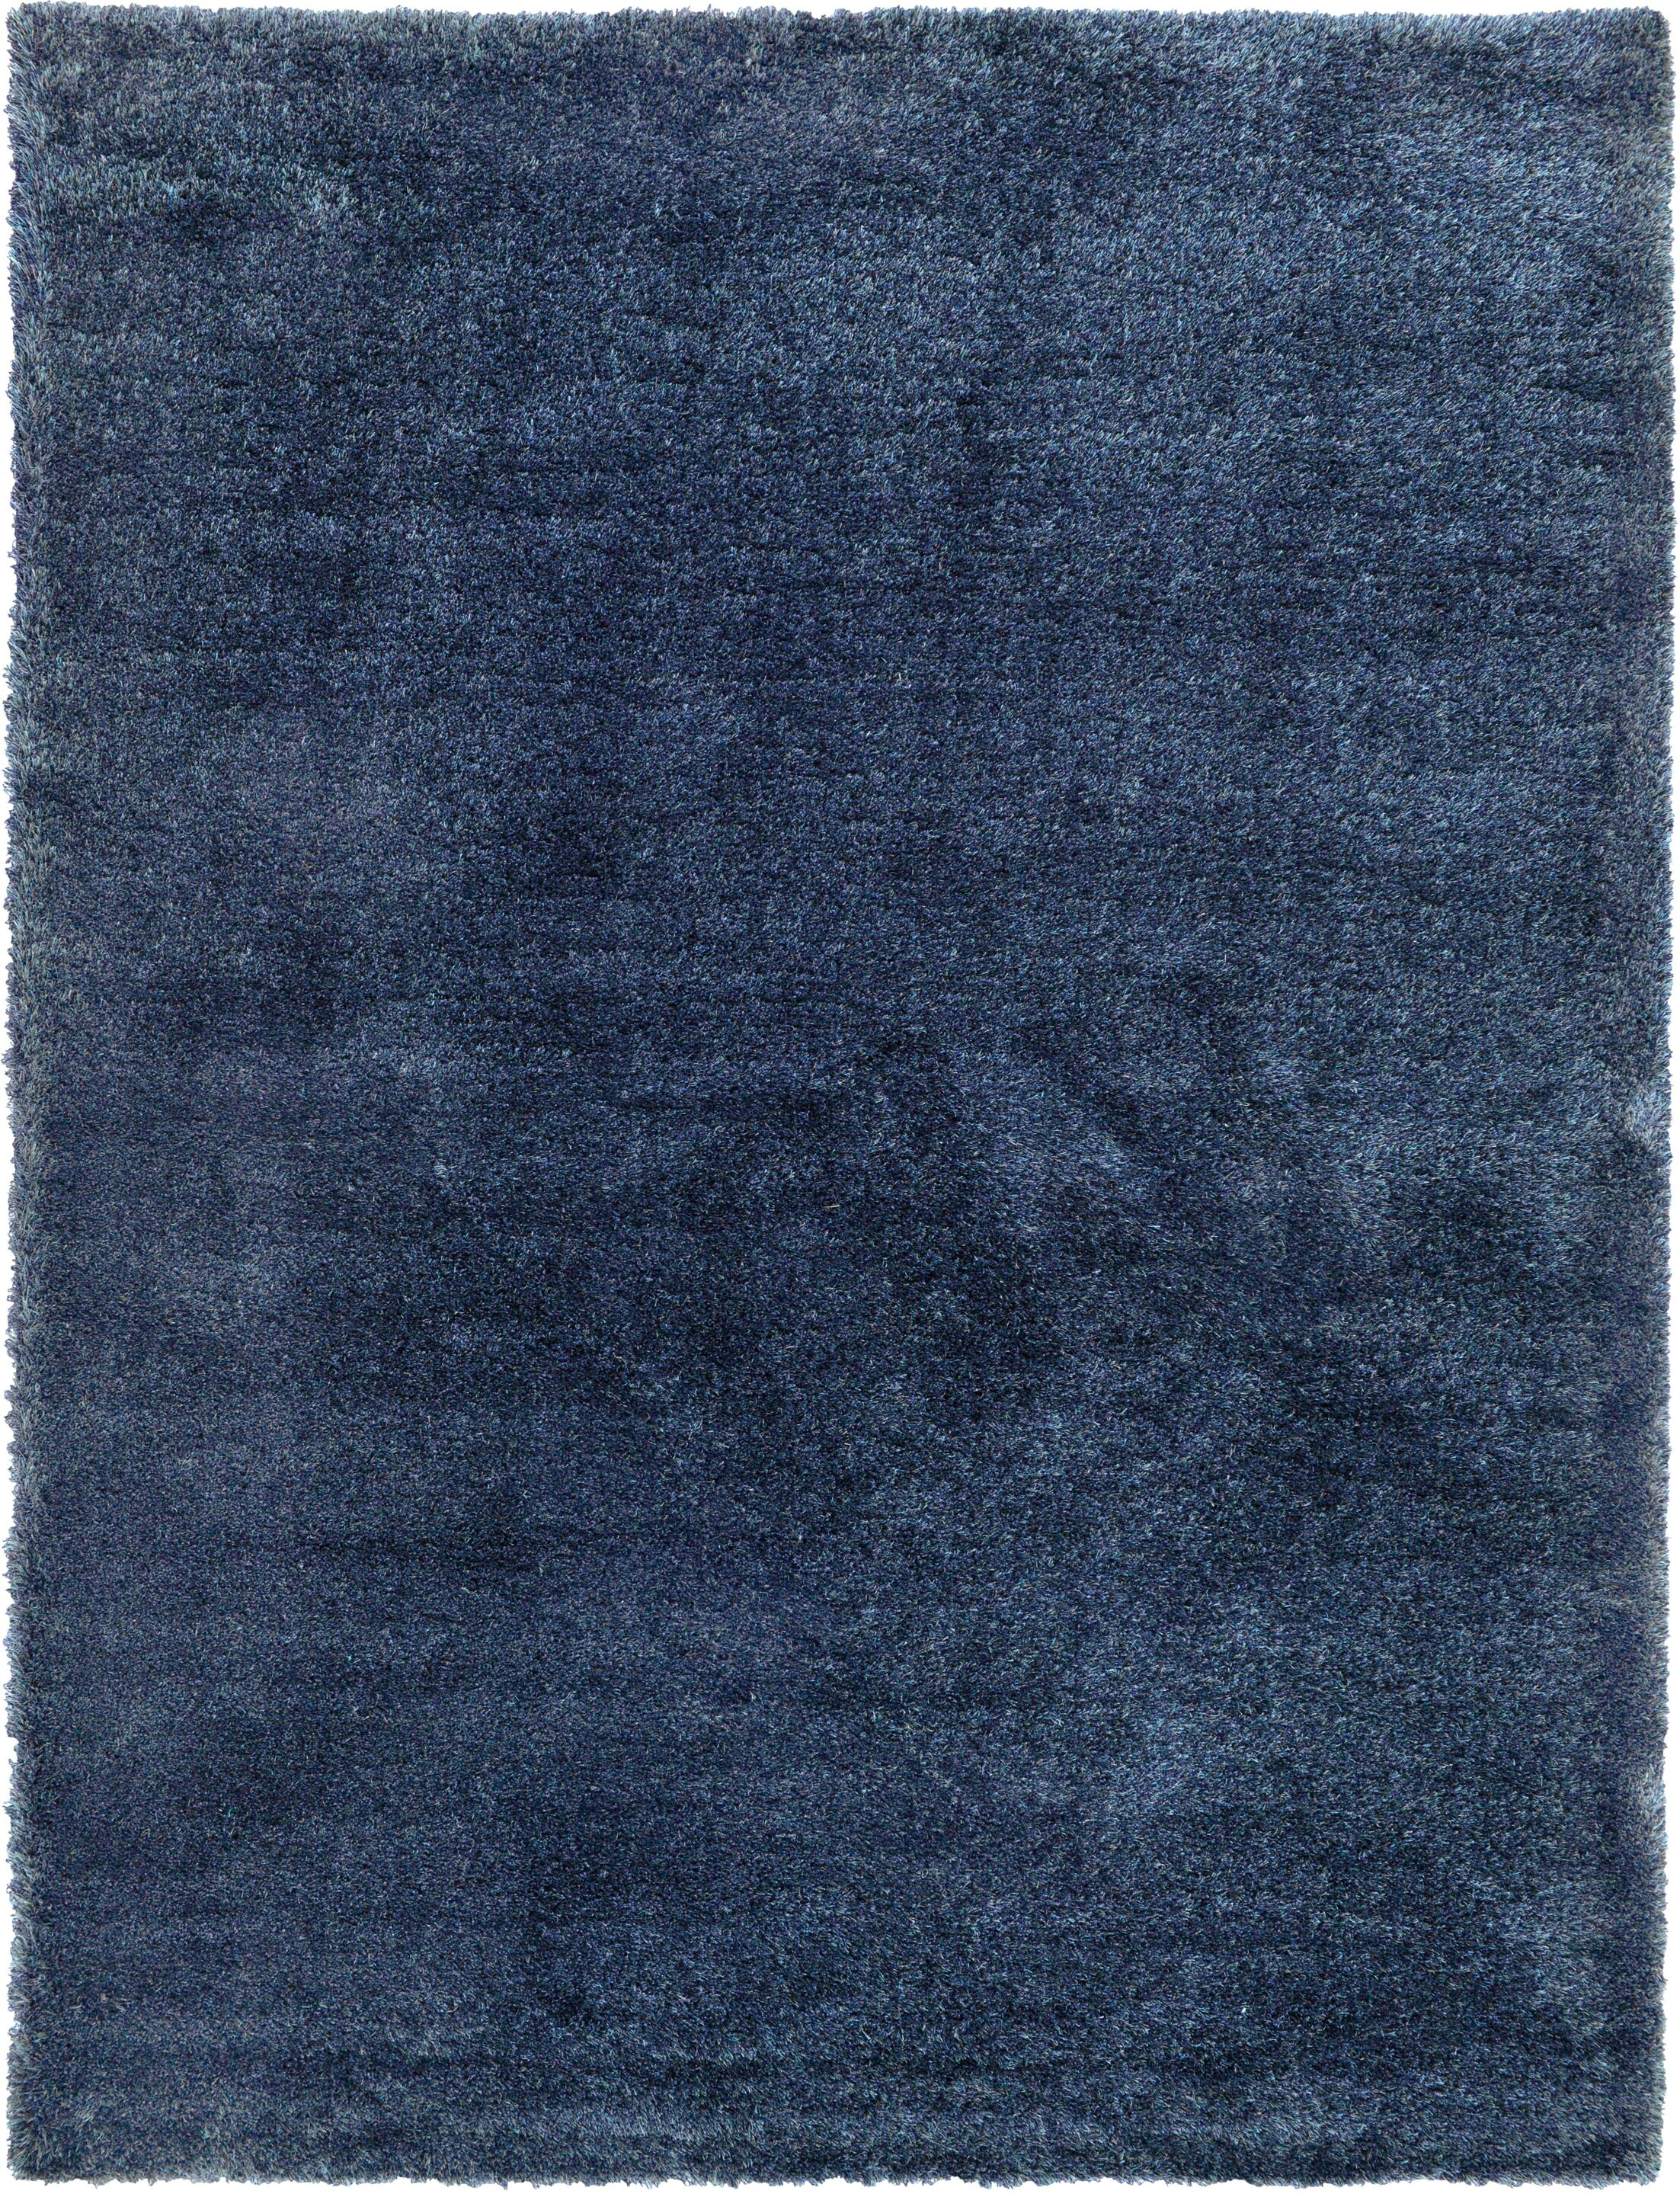 Evelyn Navy Blue Area Rug Rug Size: Rectangle 9' x 12'